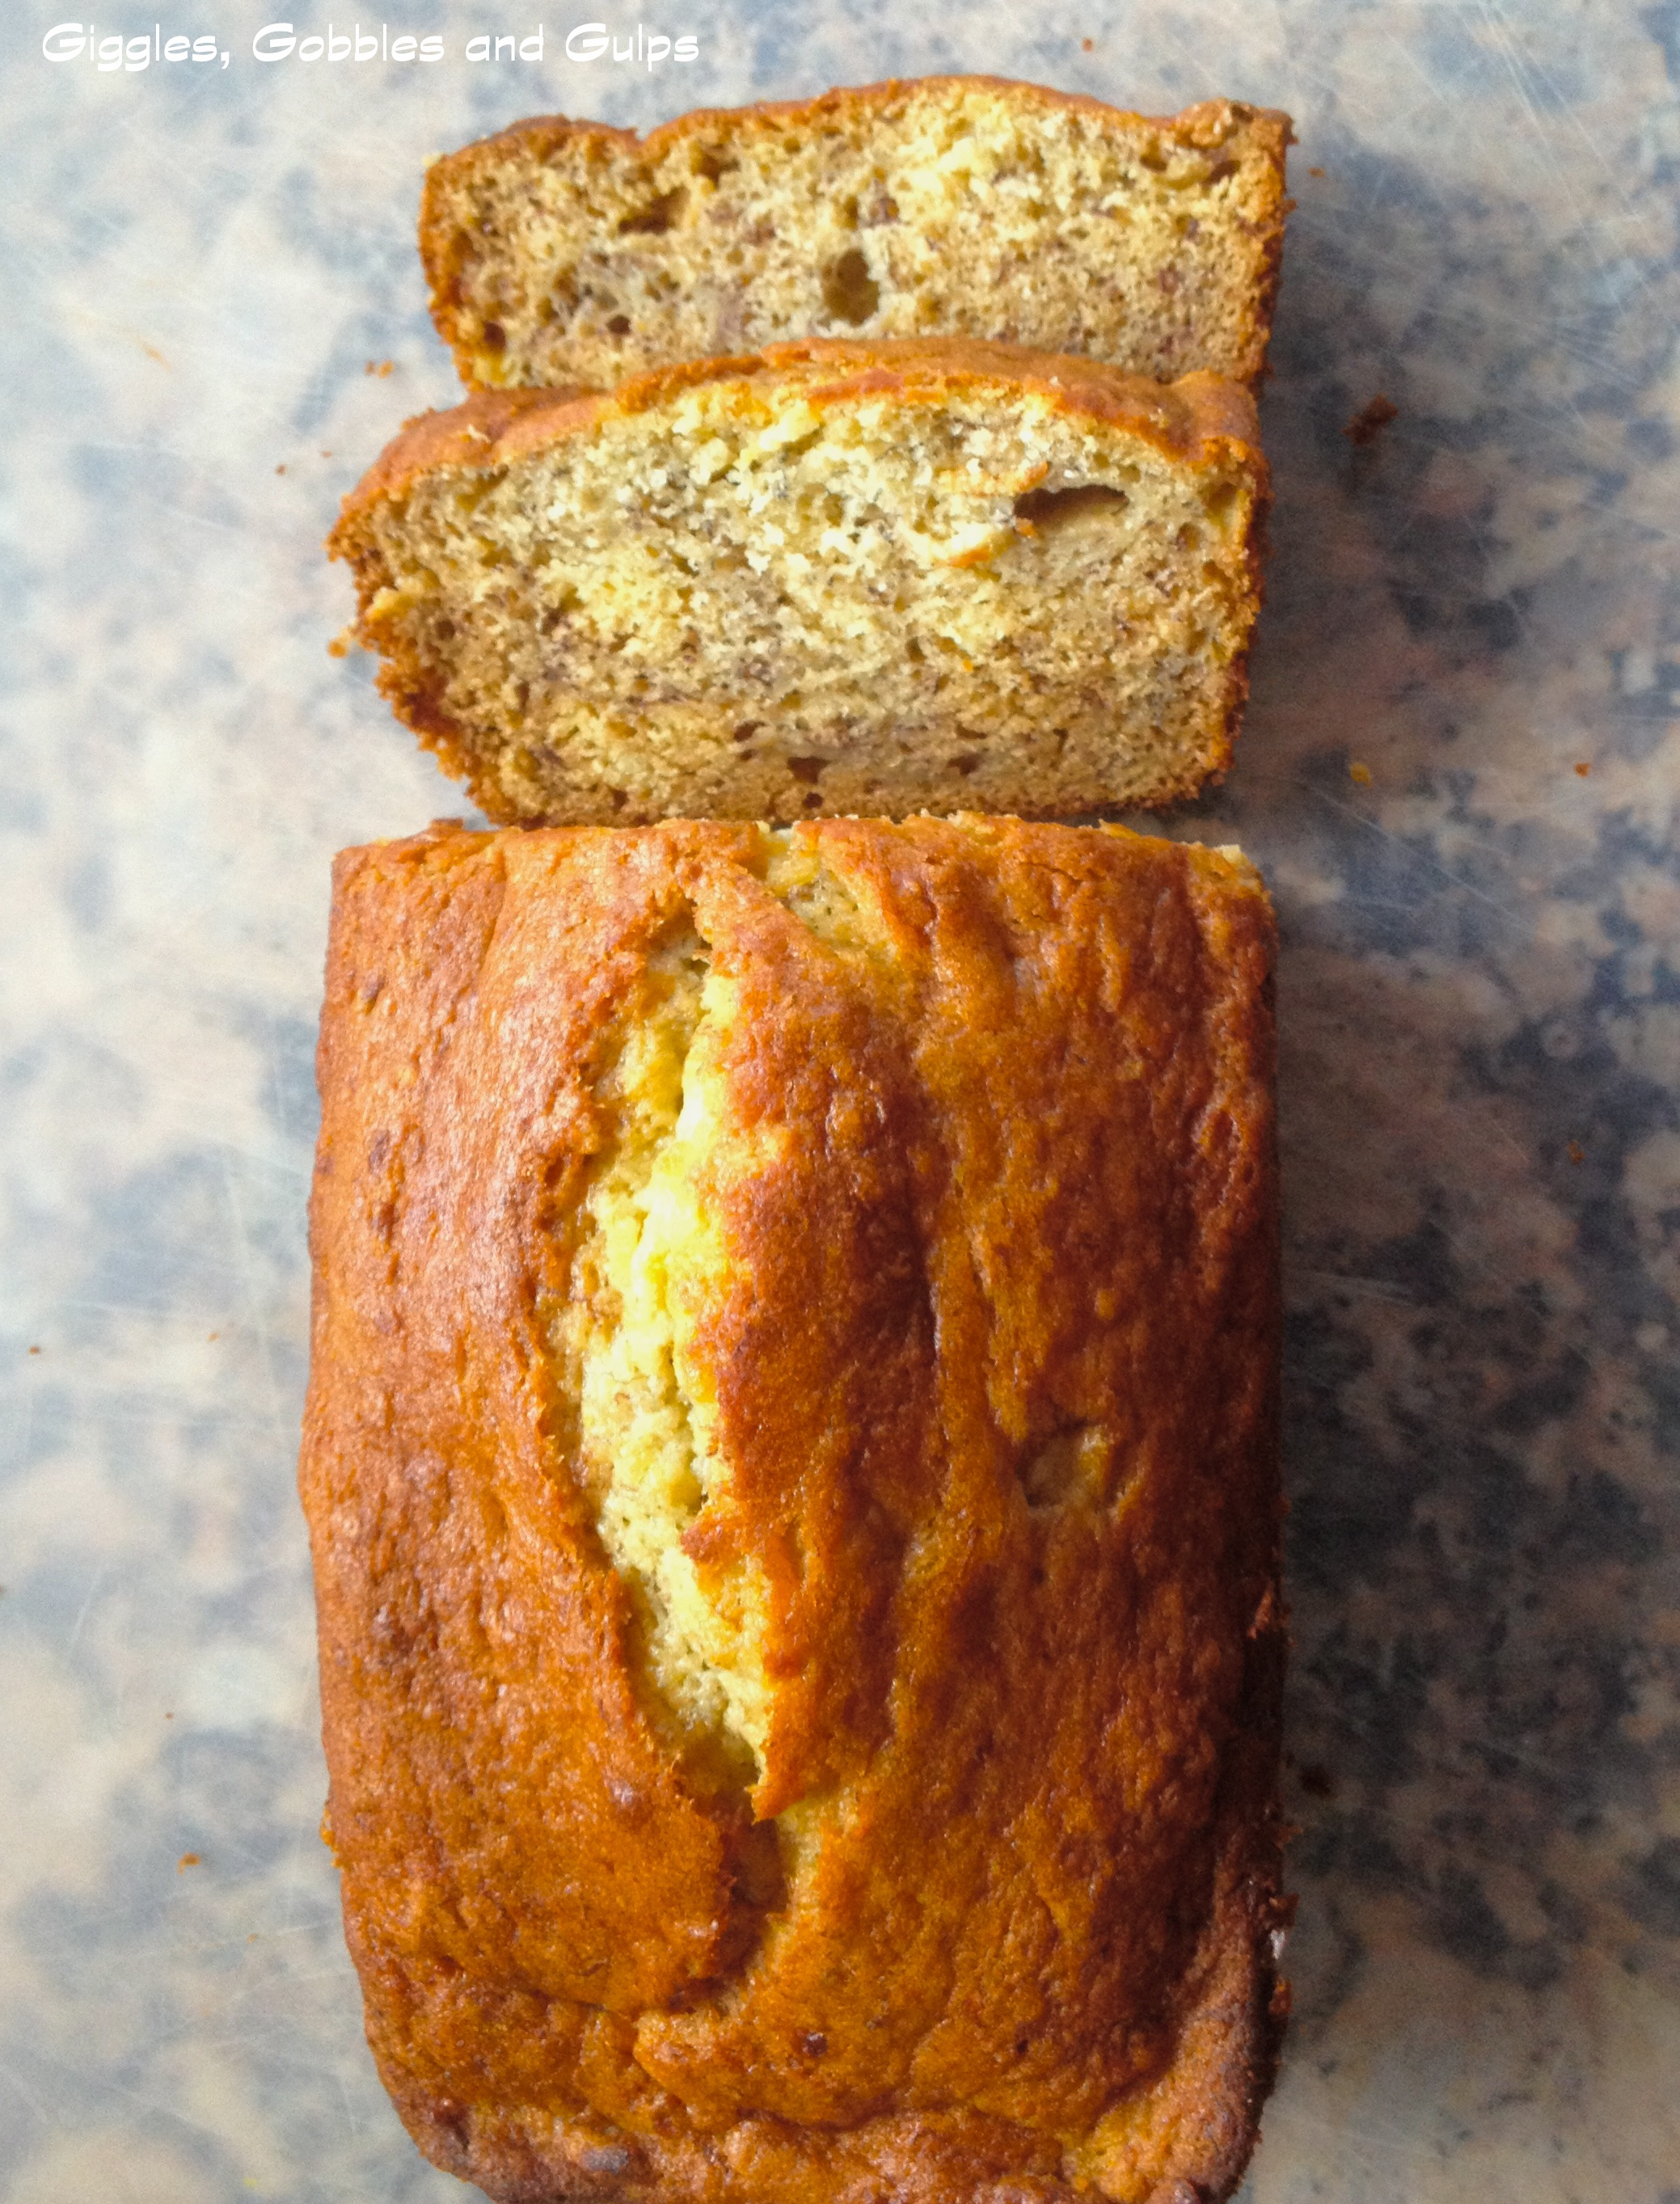 Banana bread french toast giggles gobbles and gulps banana bread french toast forumfinder Image collections